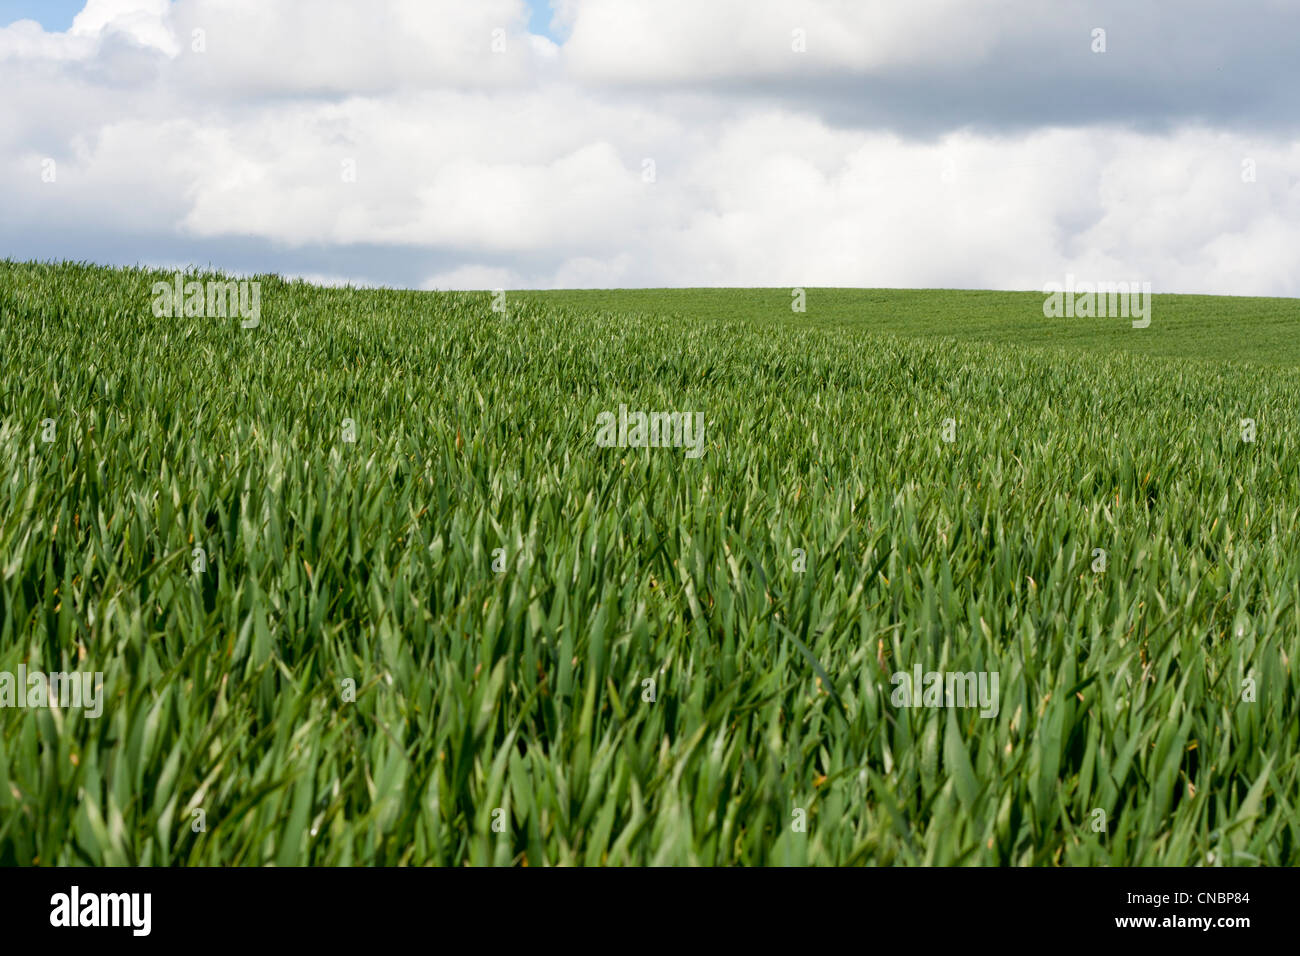 tall green grass field. Landscape Of Field, Tall Green Grass, Blue Sky, White Clouds. Summer Or Spring Scene, English Countryside. Copy Space No People Grass Field